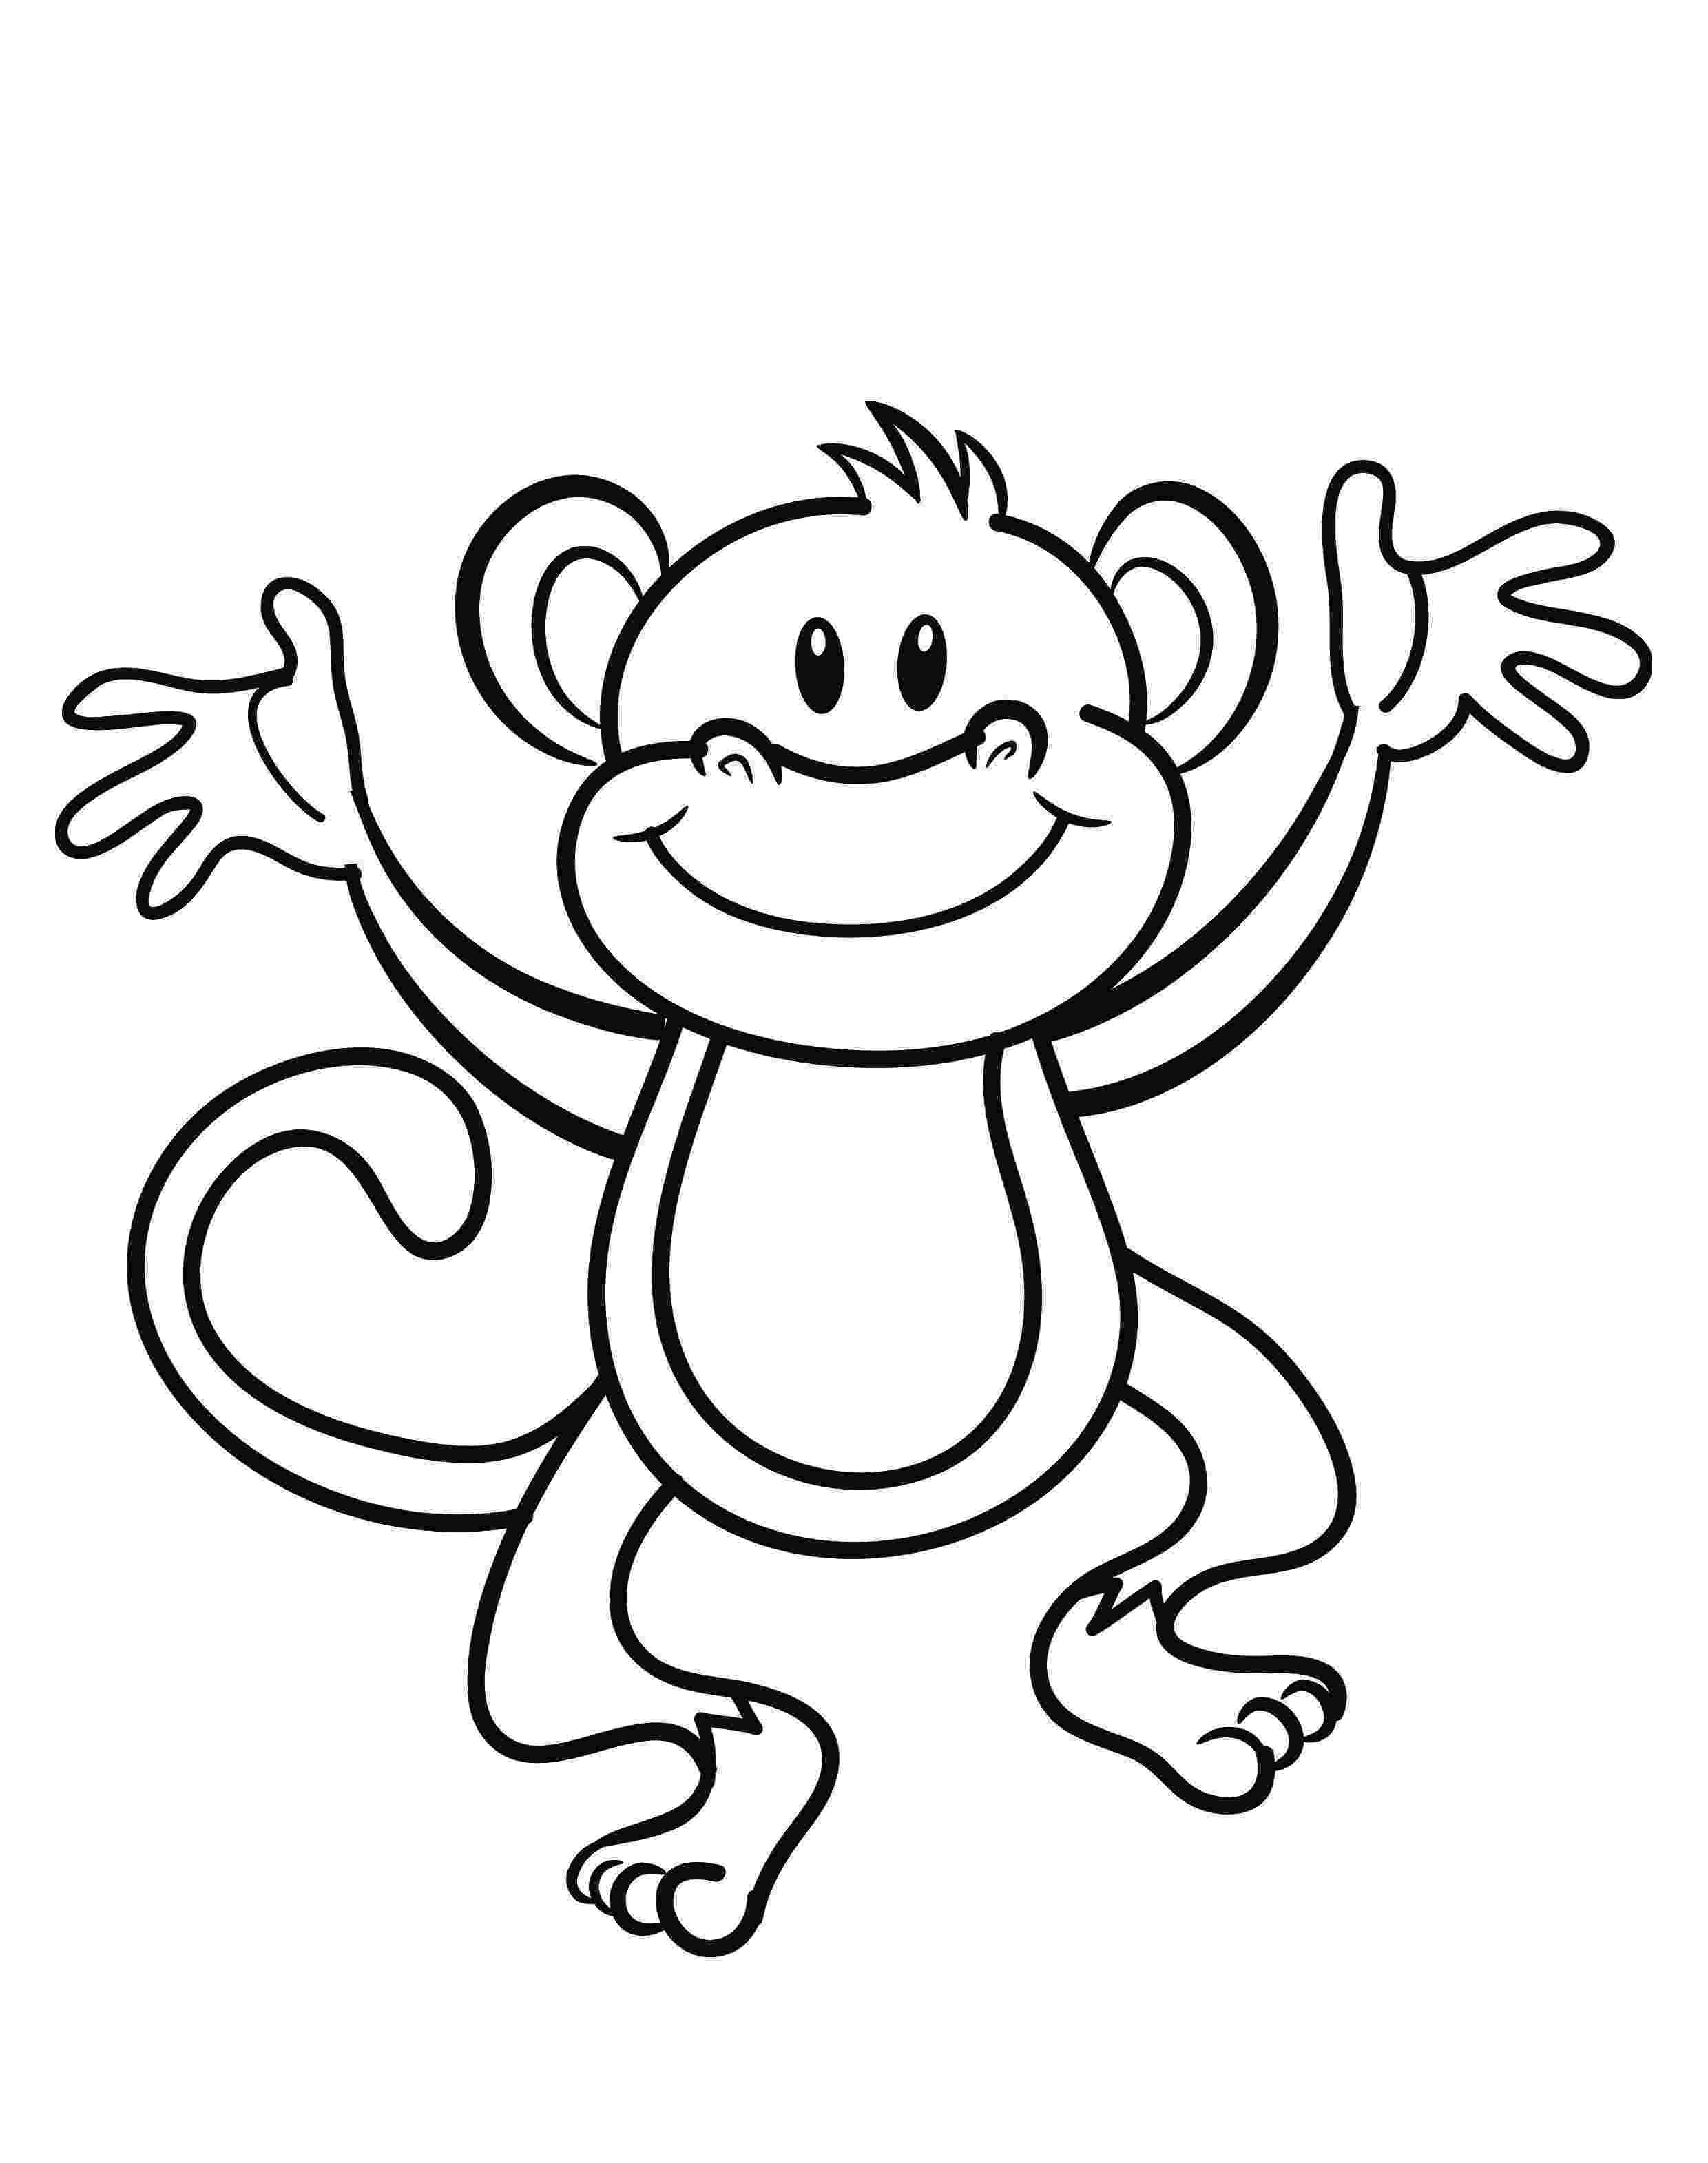 monkeys coloring pages monkey cars judo colouring pages qaf quotقquot kerd monkeyقرد monkeys pages coloring